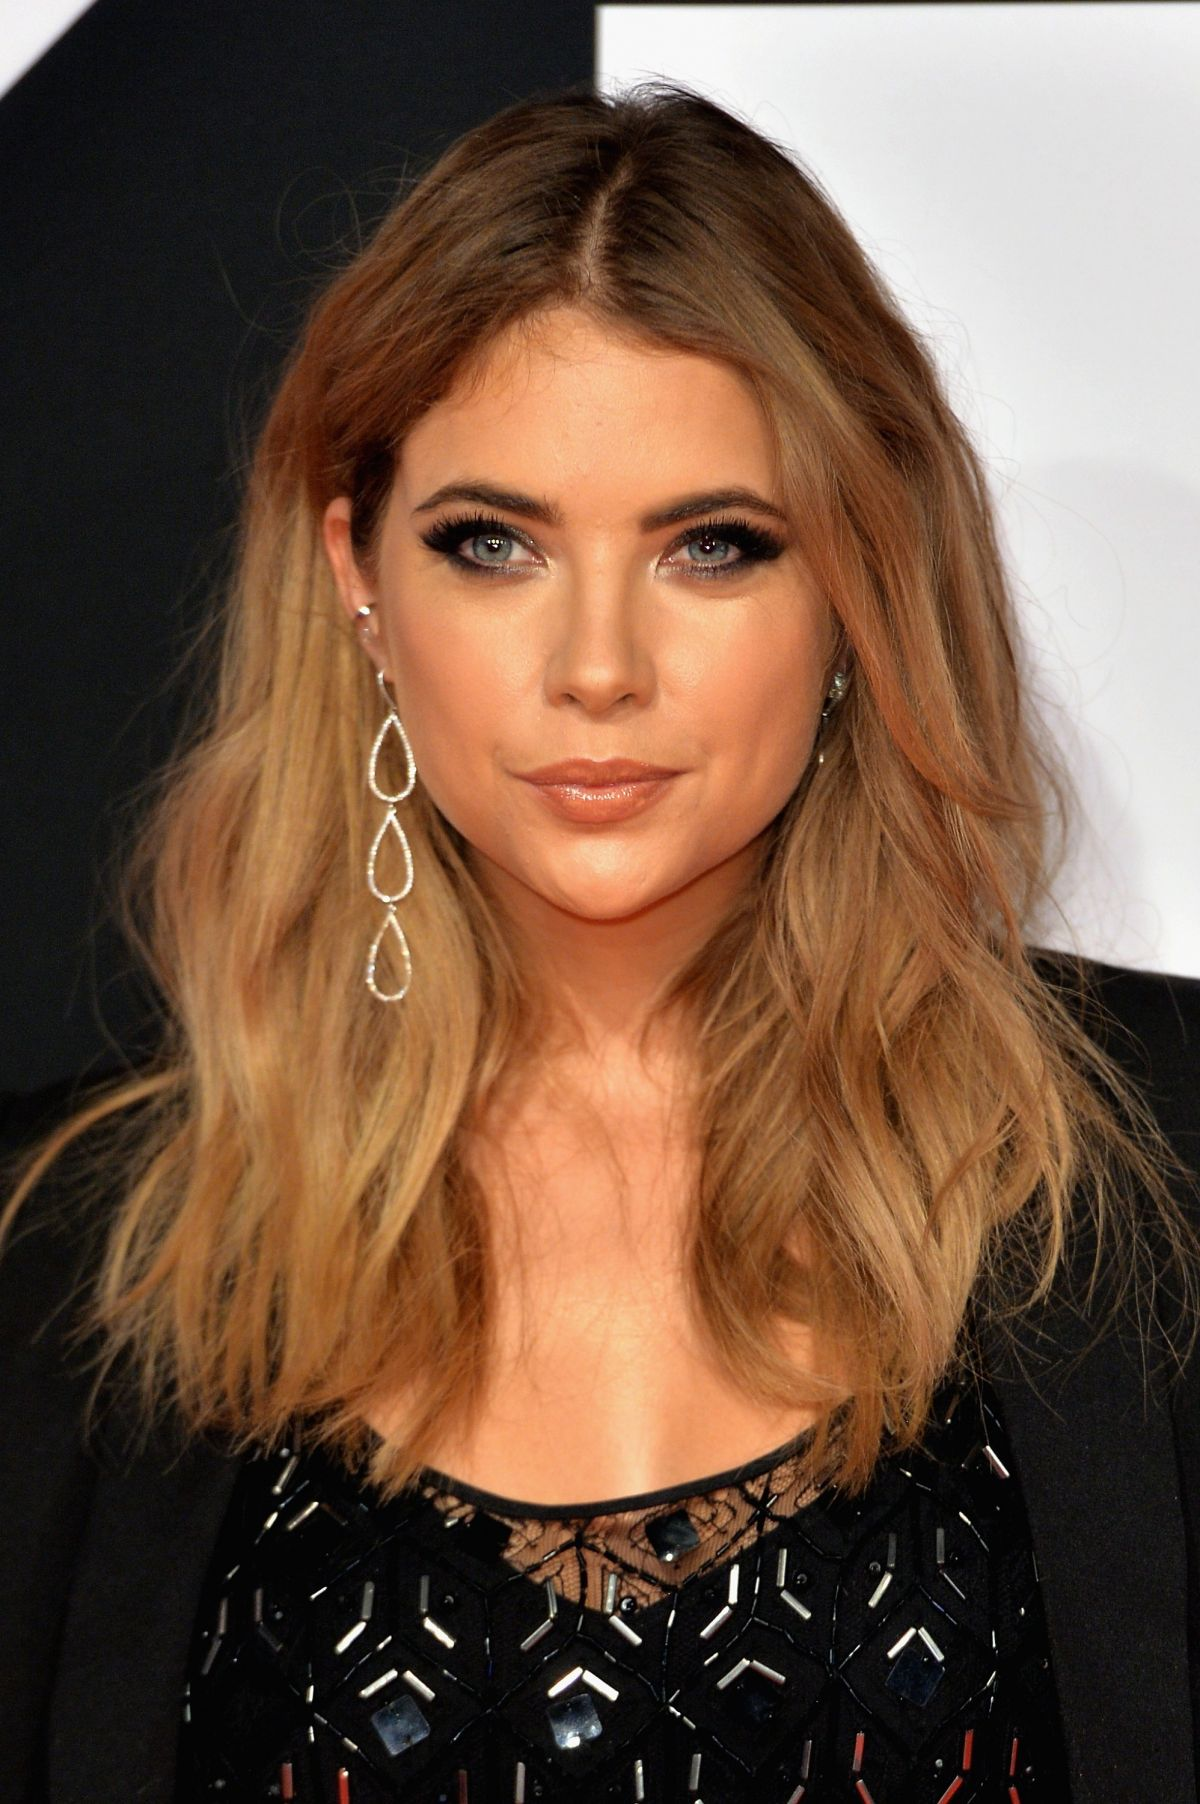 ashley benson - photo #45